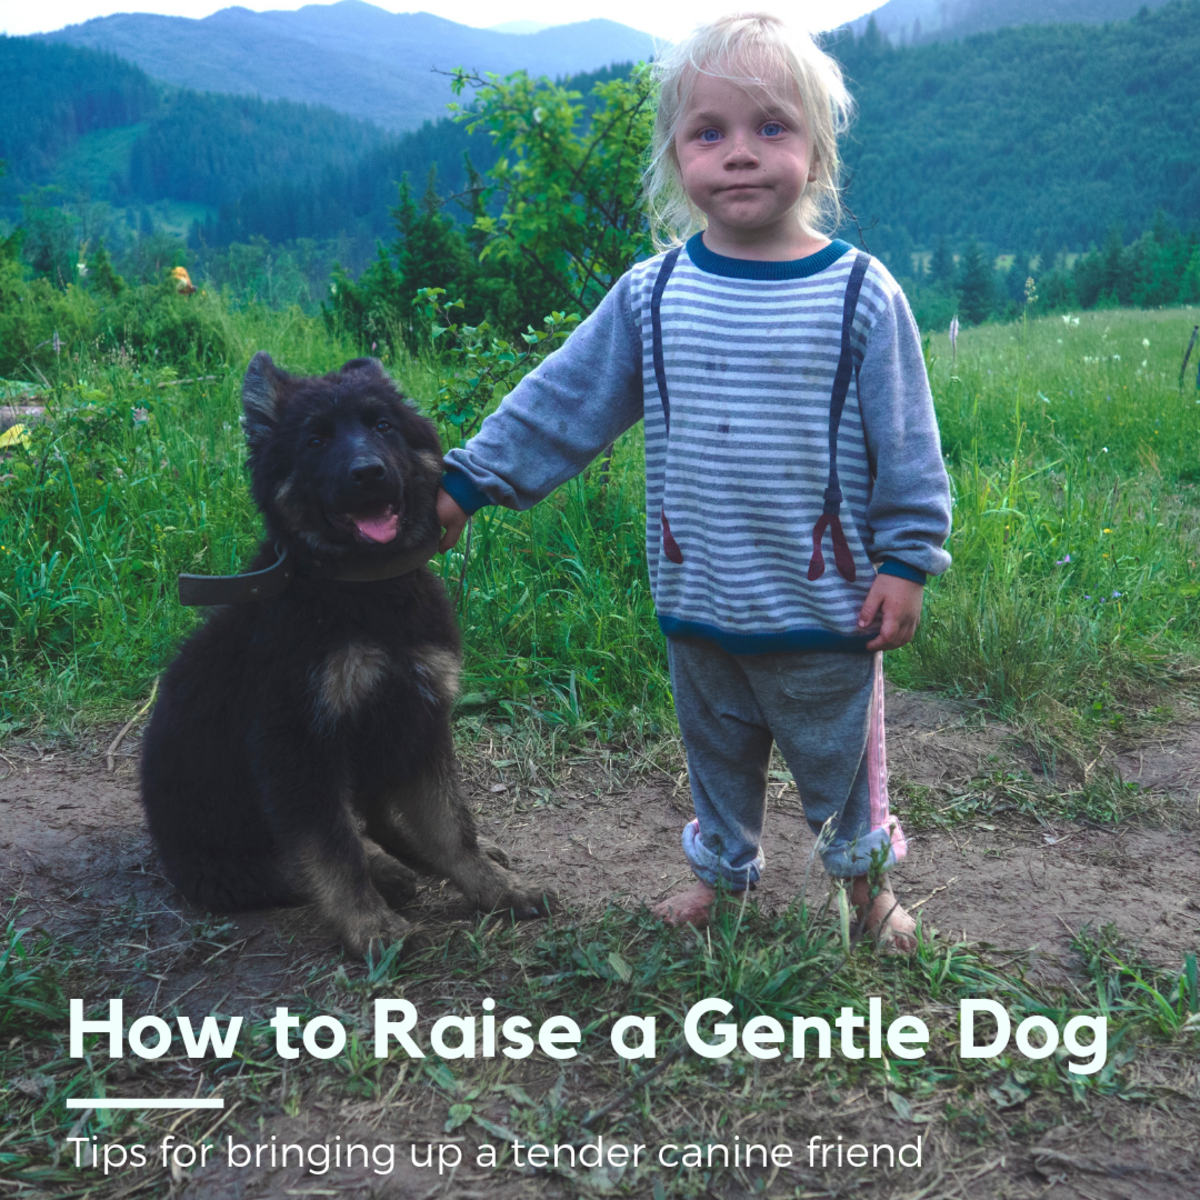 This article will break down our experience raising dogs with our children and offer up tips to raising gentle canines.